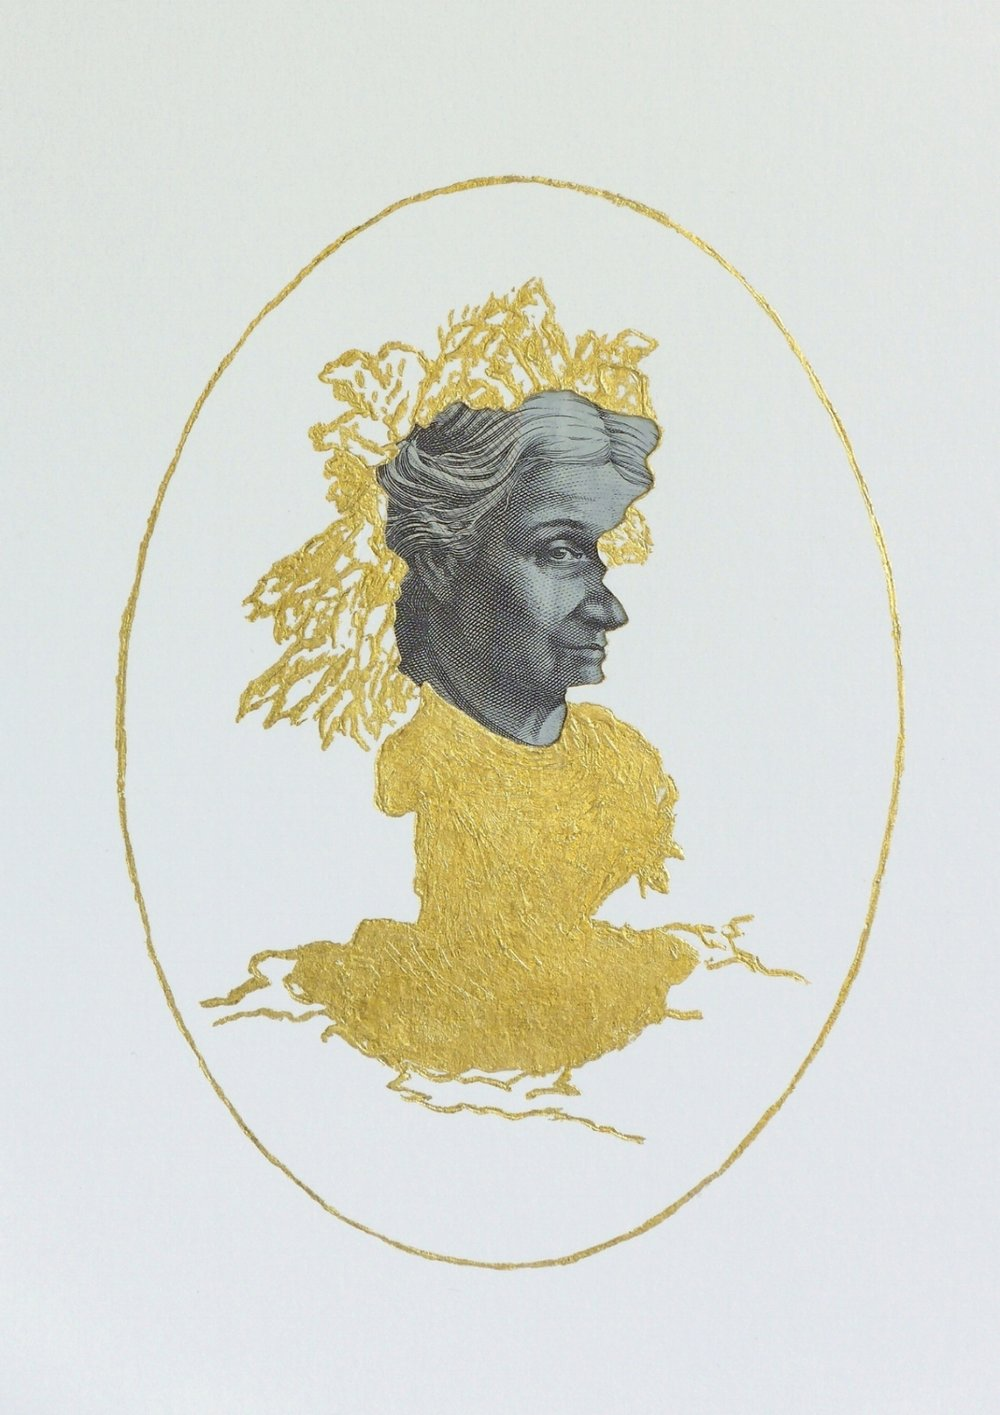 Myth of a Silhouette Portrait series , 2017, 50AUD and 24c gold leaf on hand-cut paper, 13 x 9.4 cm